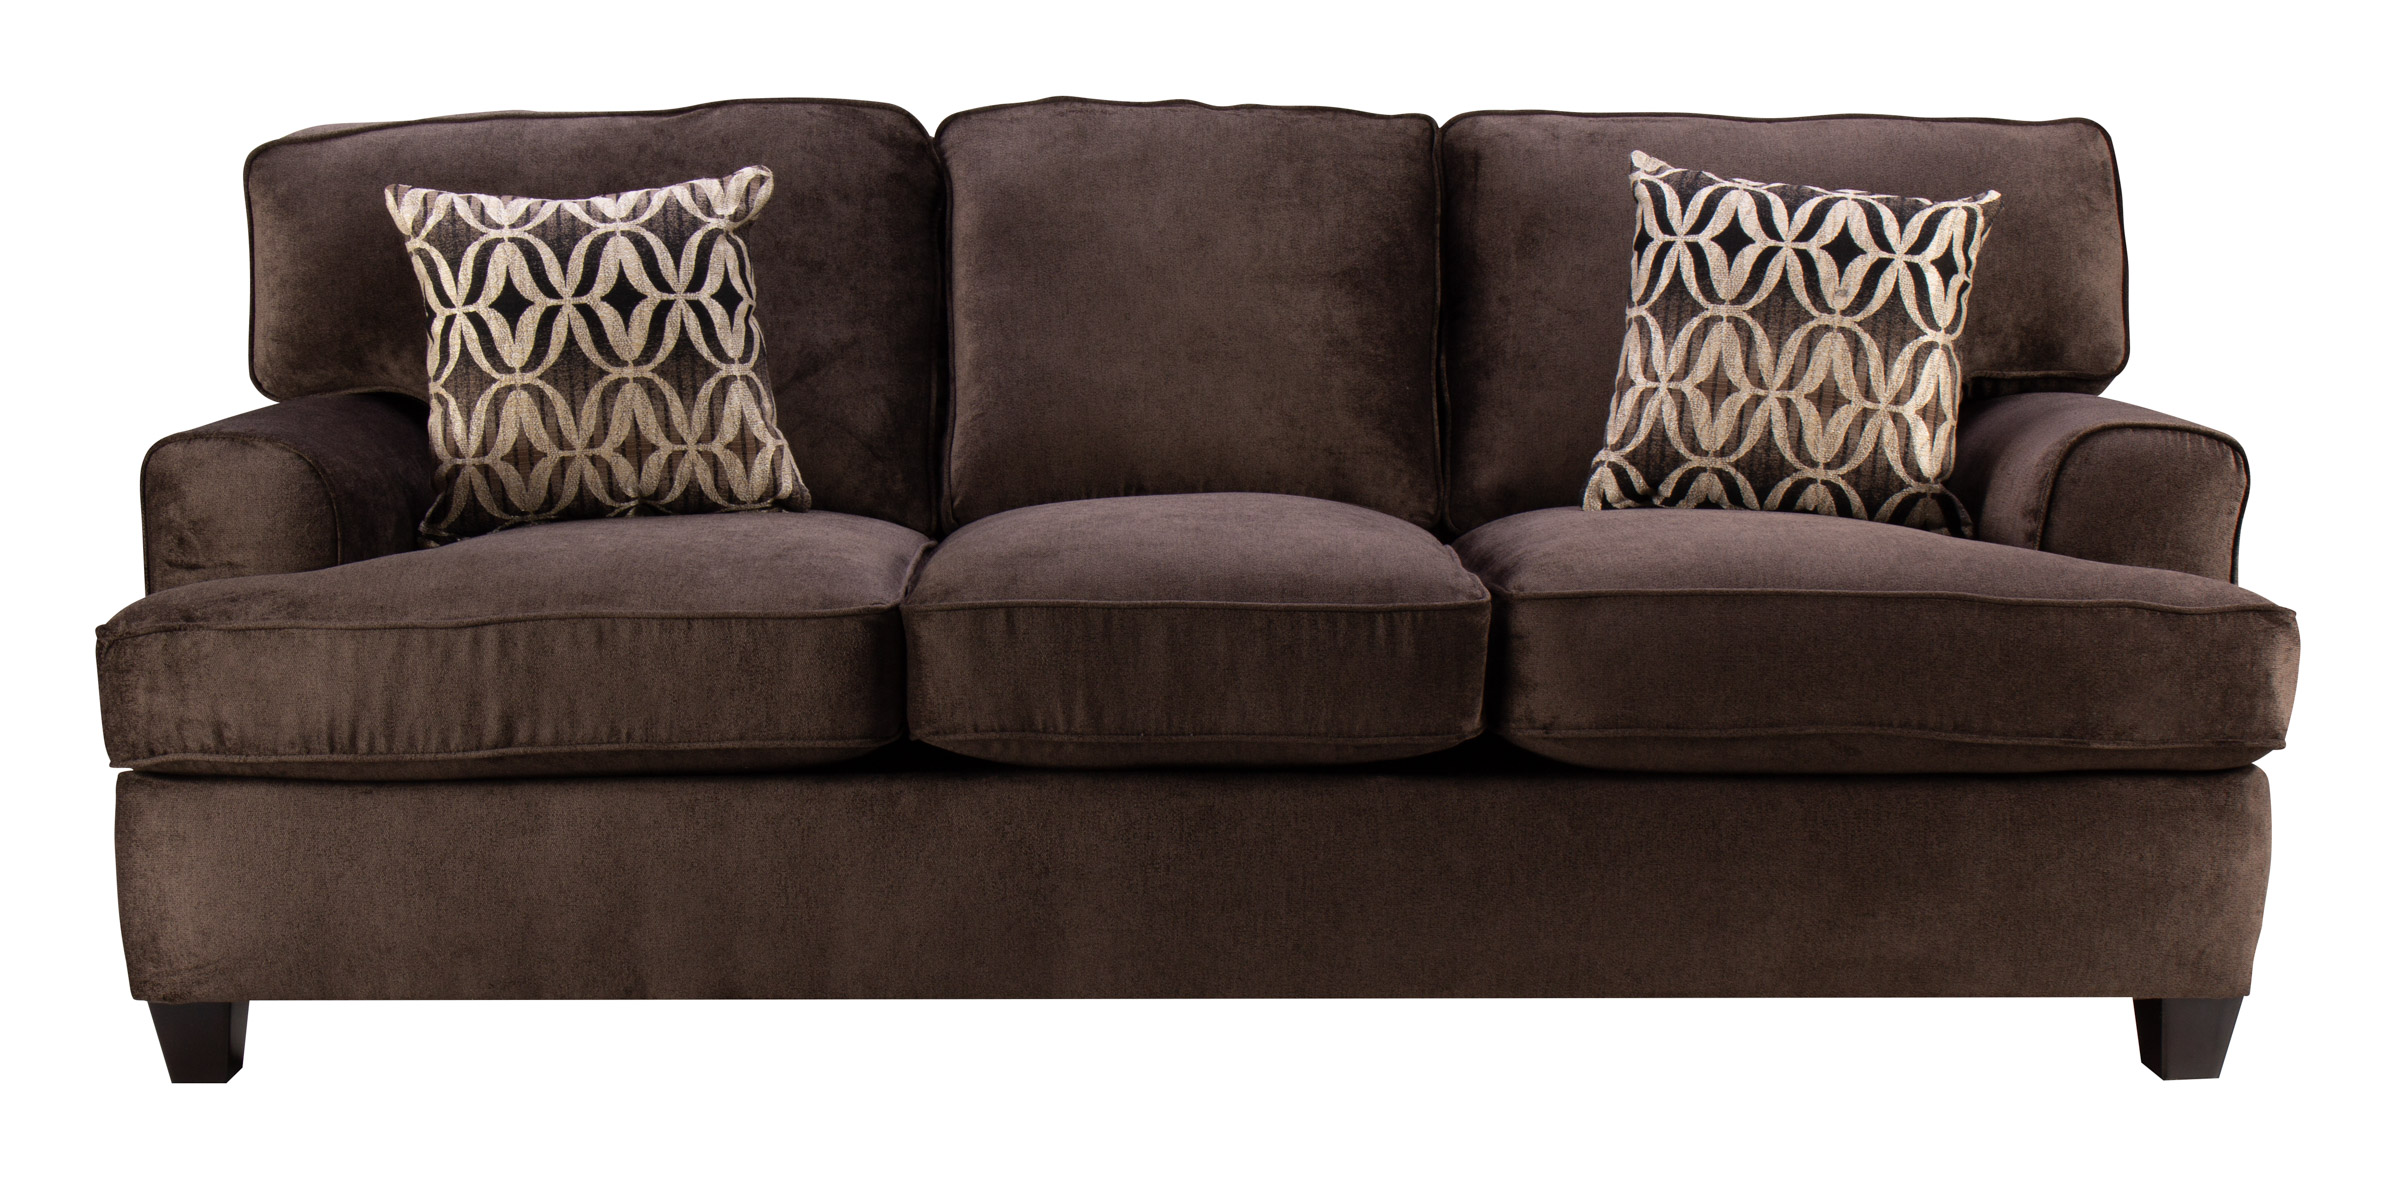 Diana Sofa In Dark Slate